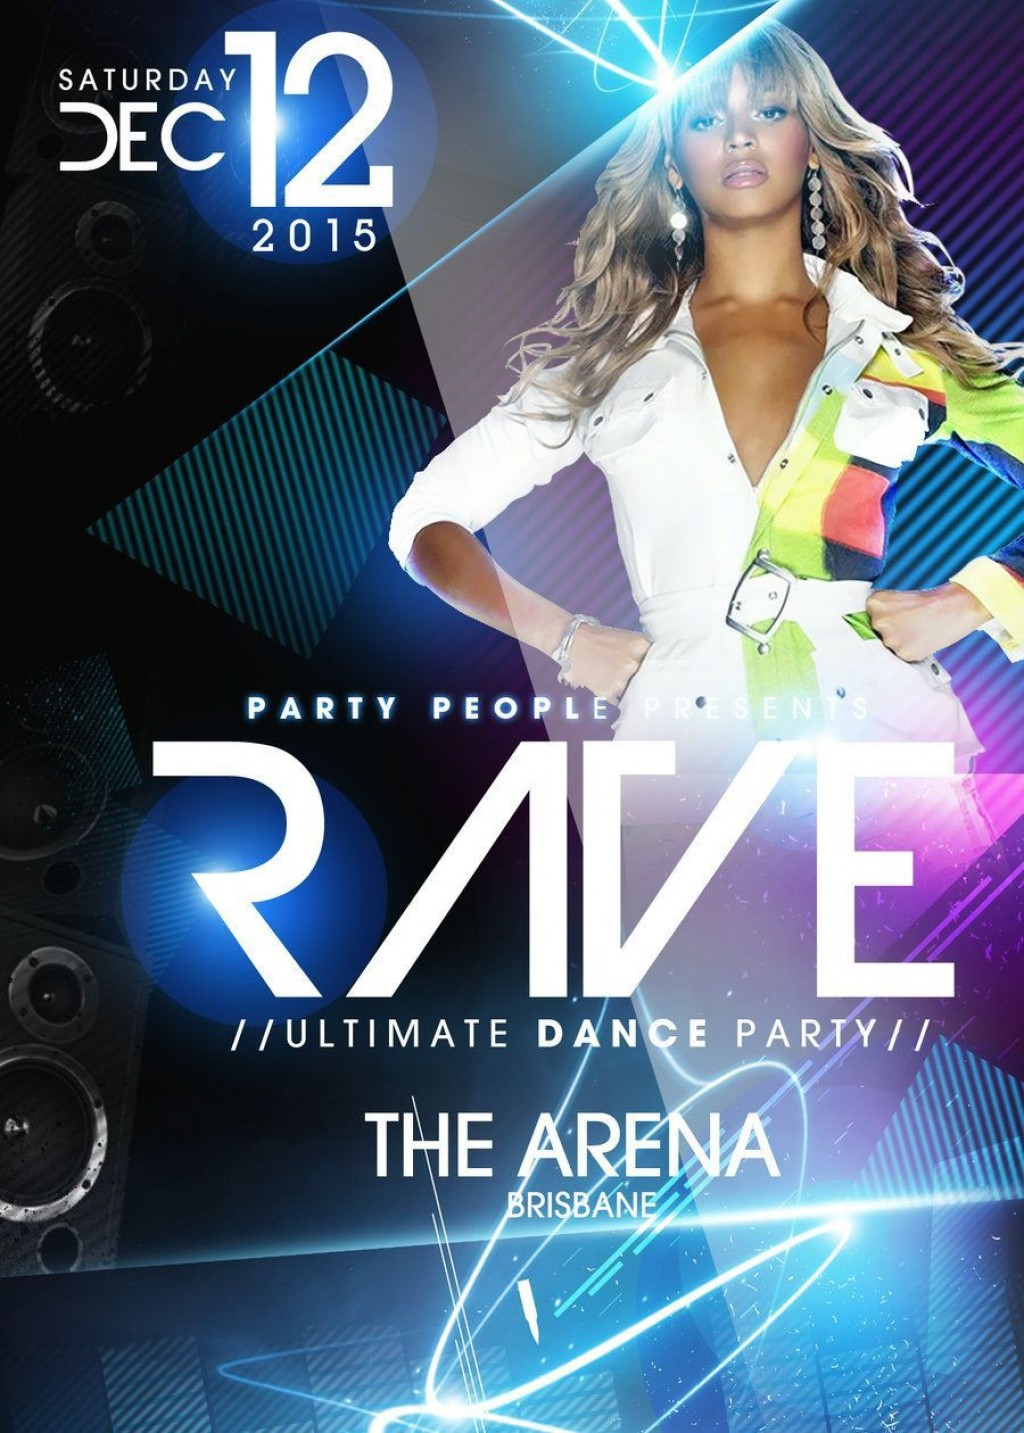 003 Fantastic Free Psd Party Flyer Template Download Photo  - Neon Glow RaveLarge